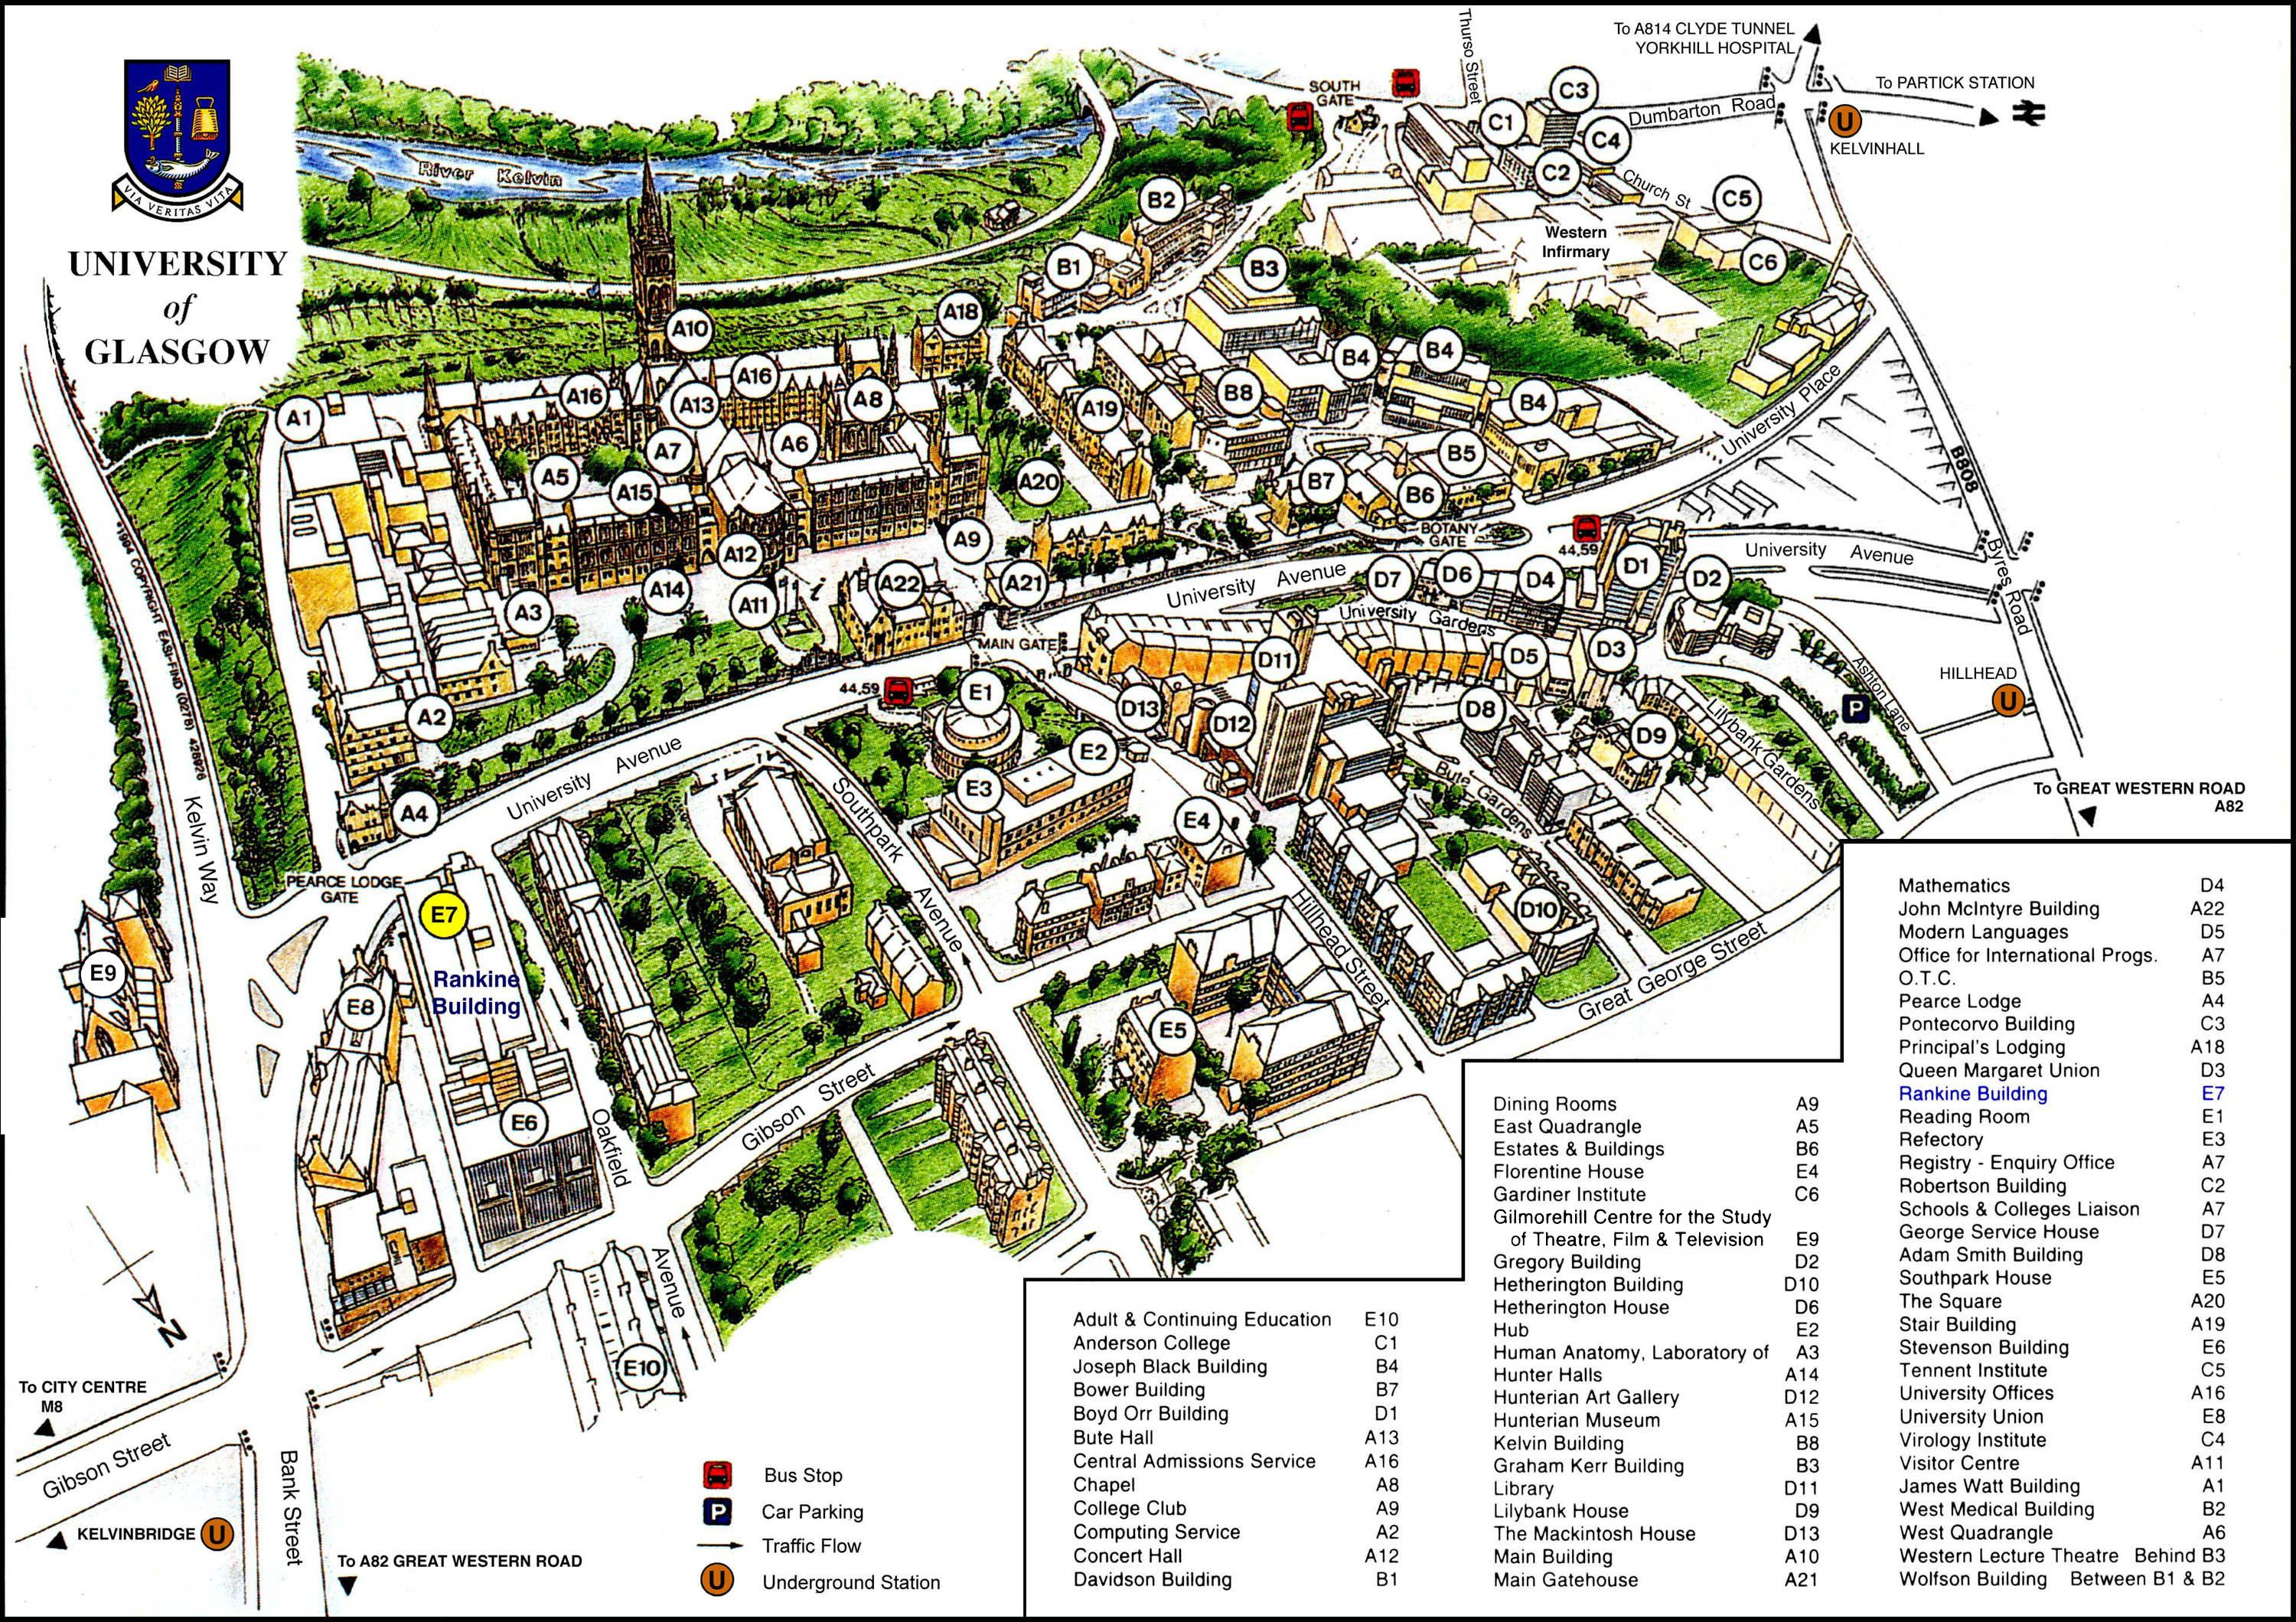 Glasgow Uni Map Image result for 17th century map of glasgow | Celtic World in